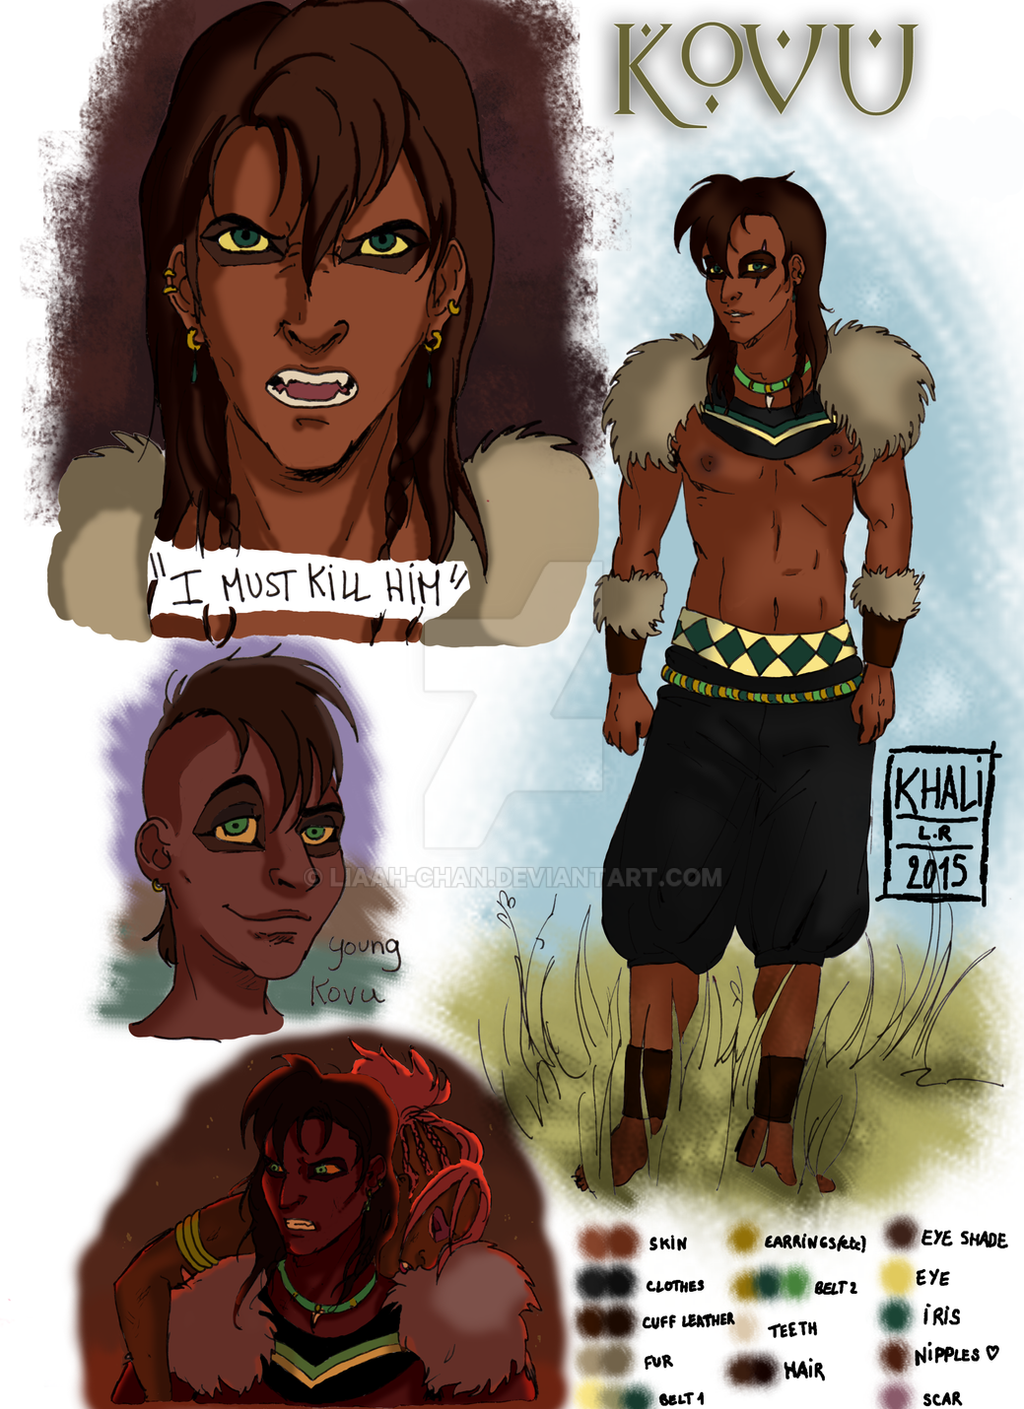 Human Kovu - character design - by Liaah-chan on DeviantArt